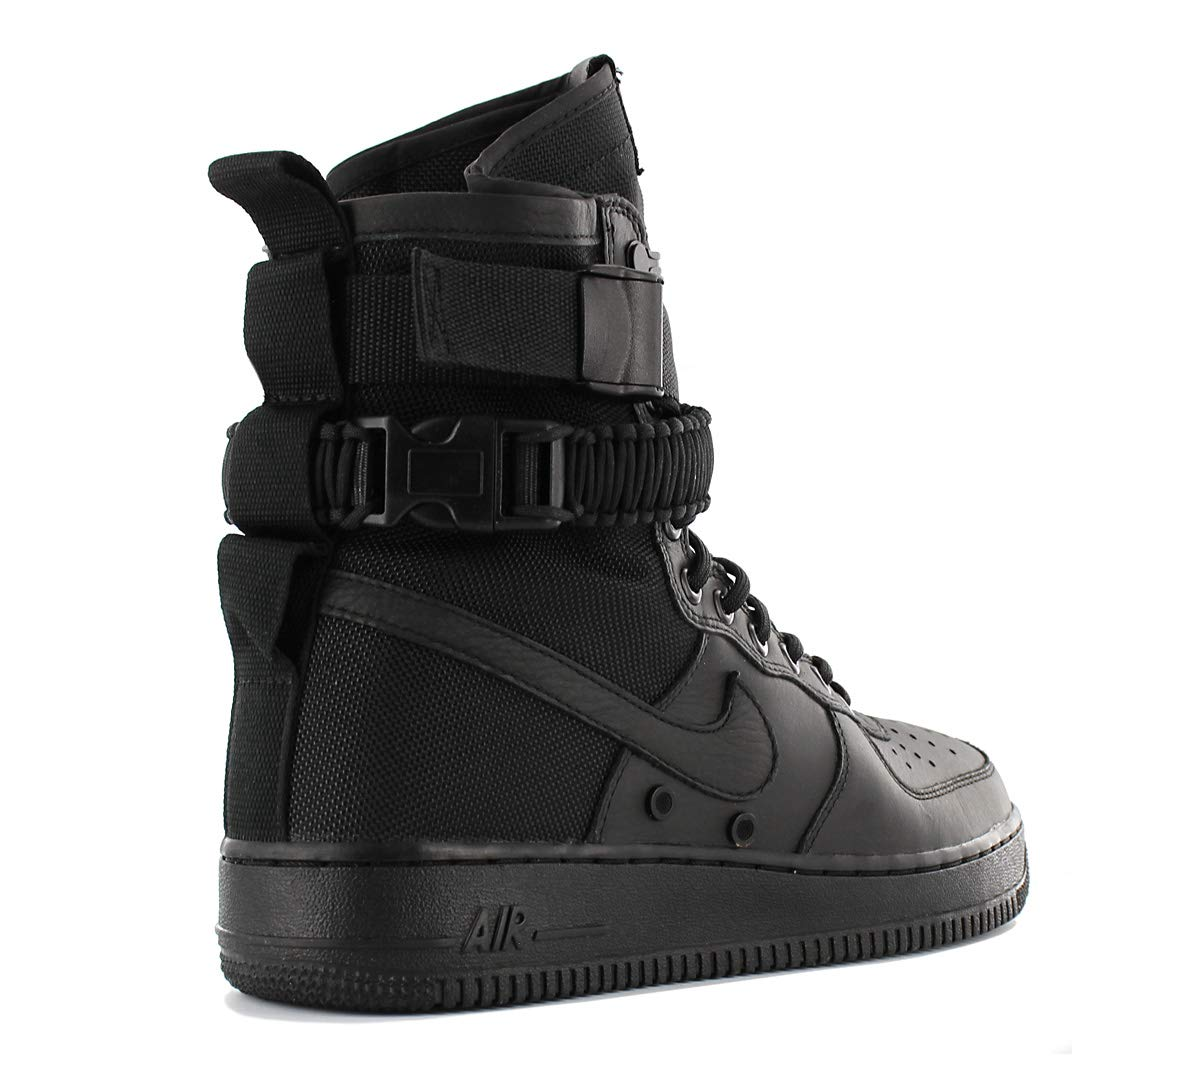 61HvWRznZPL - Nike Air Force SF AF1 High Boot Sneaker Boots Black Men Trainers Sneaker Shoes